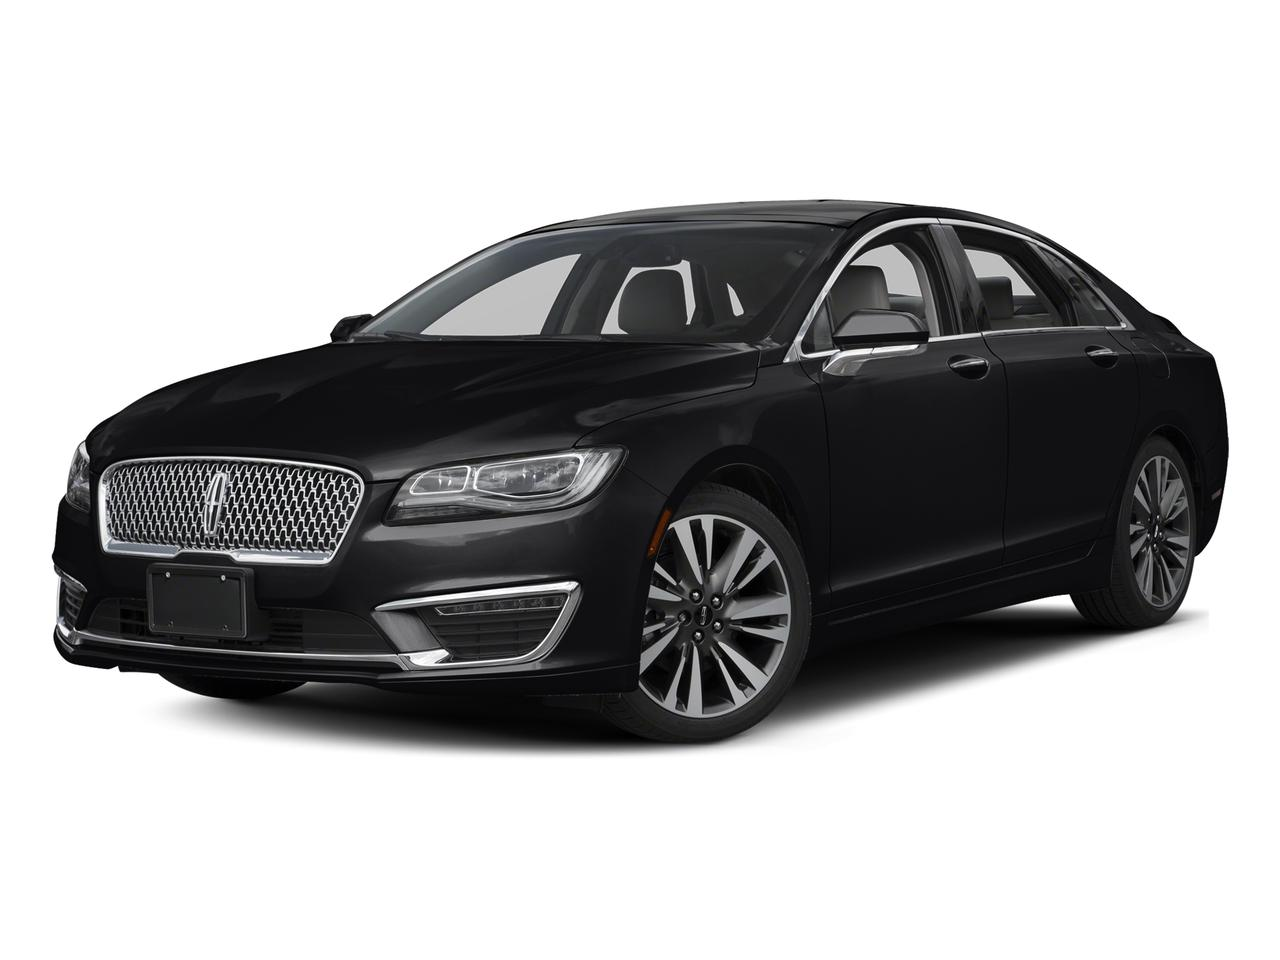 2017 LINCOLN MKZ Vehicle Photo in Ocala, FL 34474